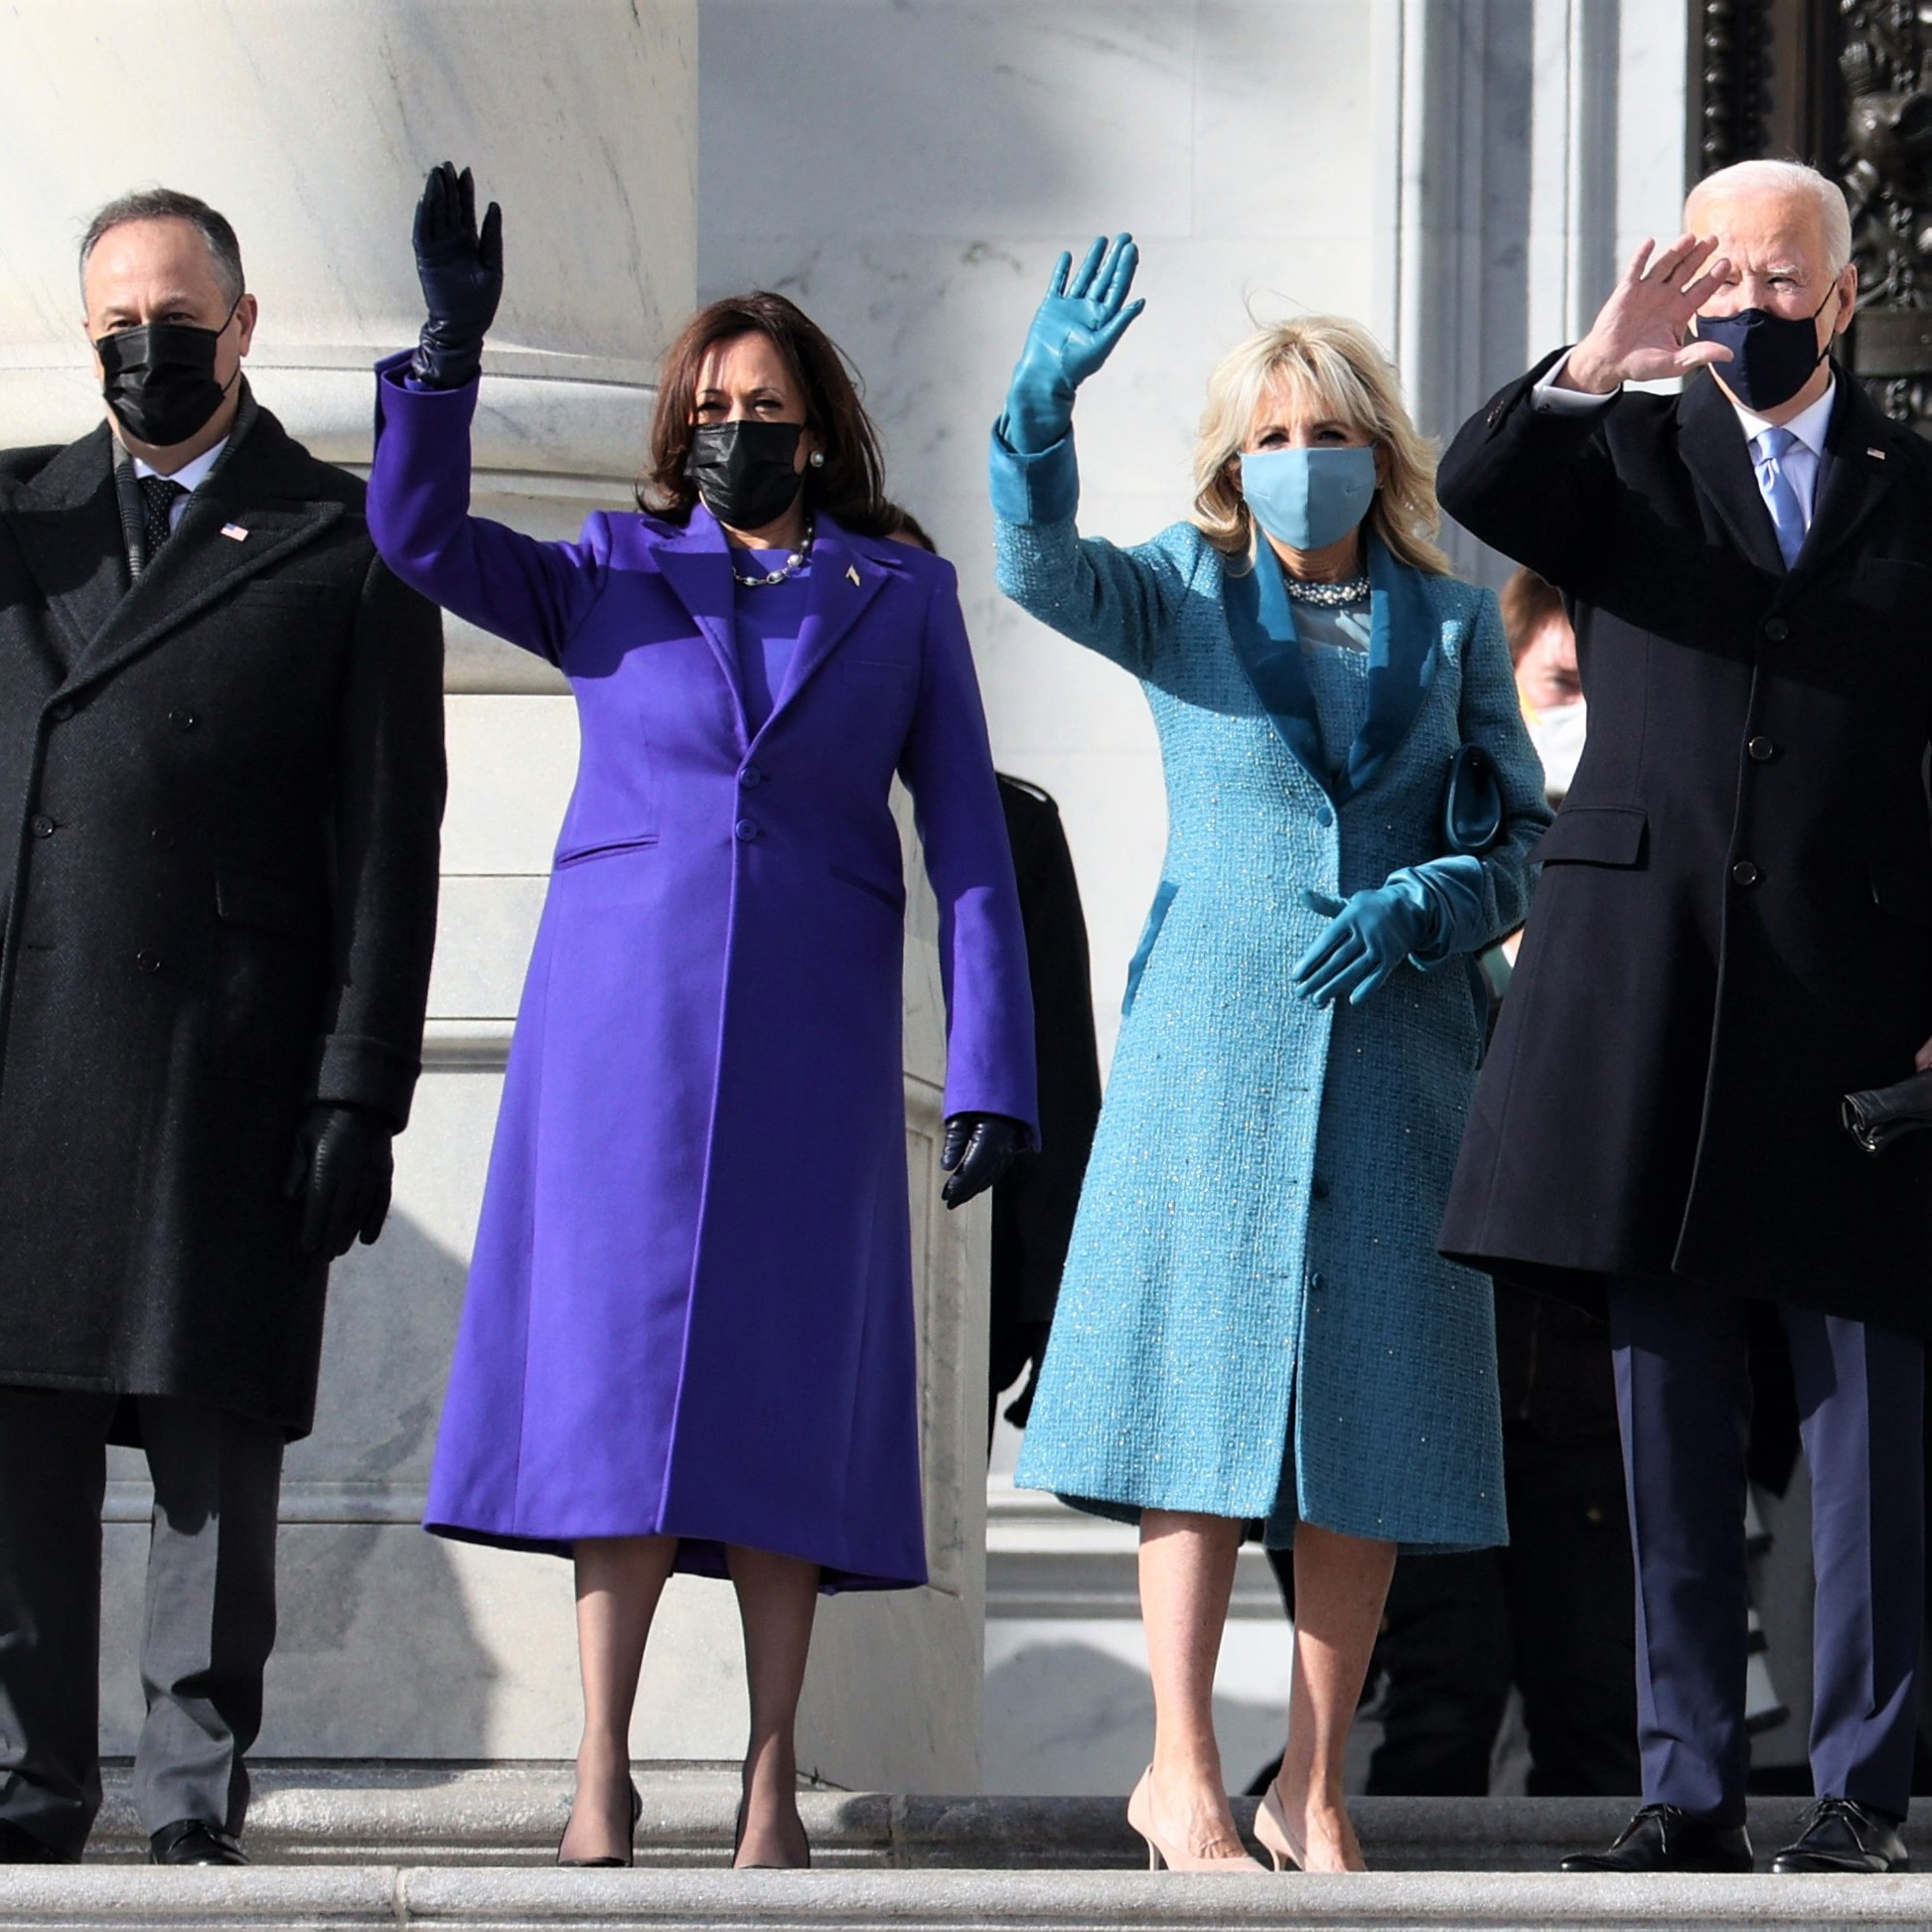 Joe Biden, Kamala Harris, and their spouses at the Capitol for inauguration